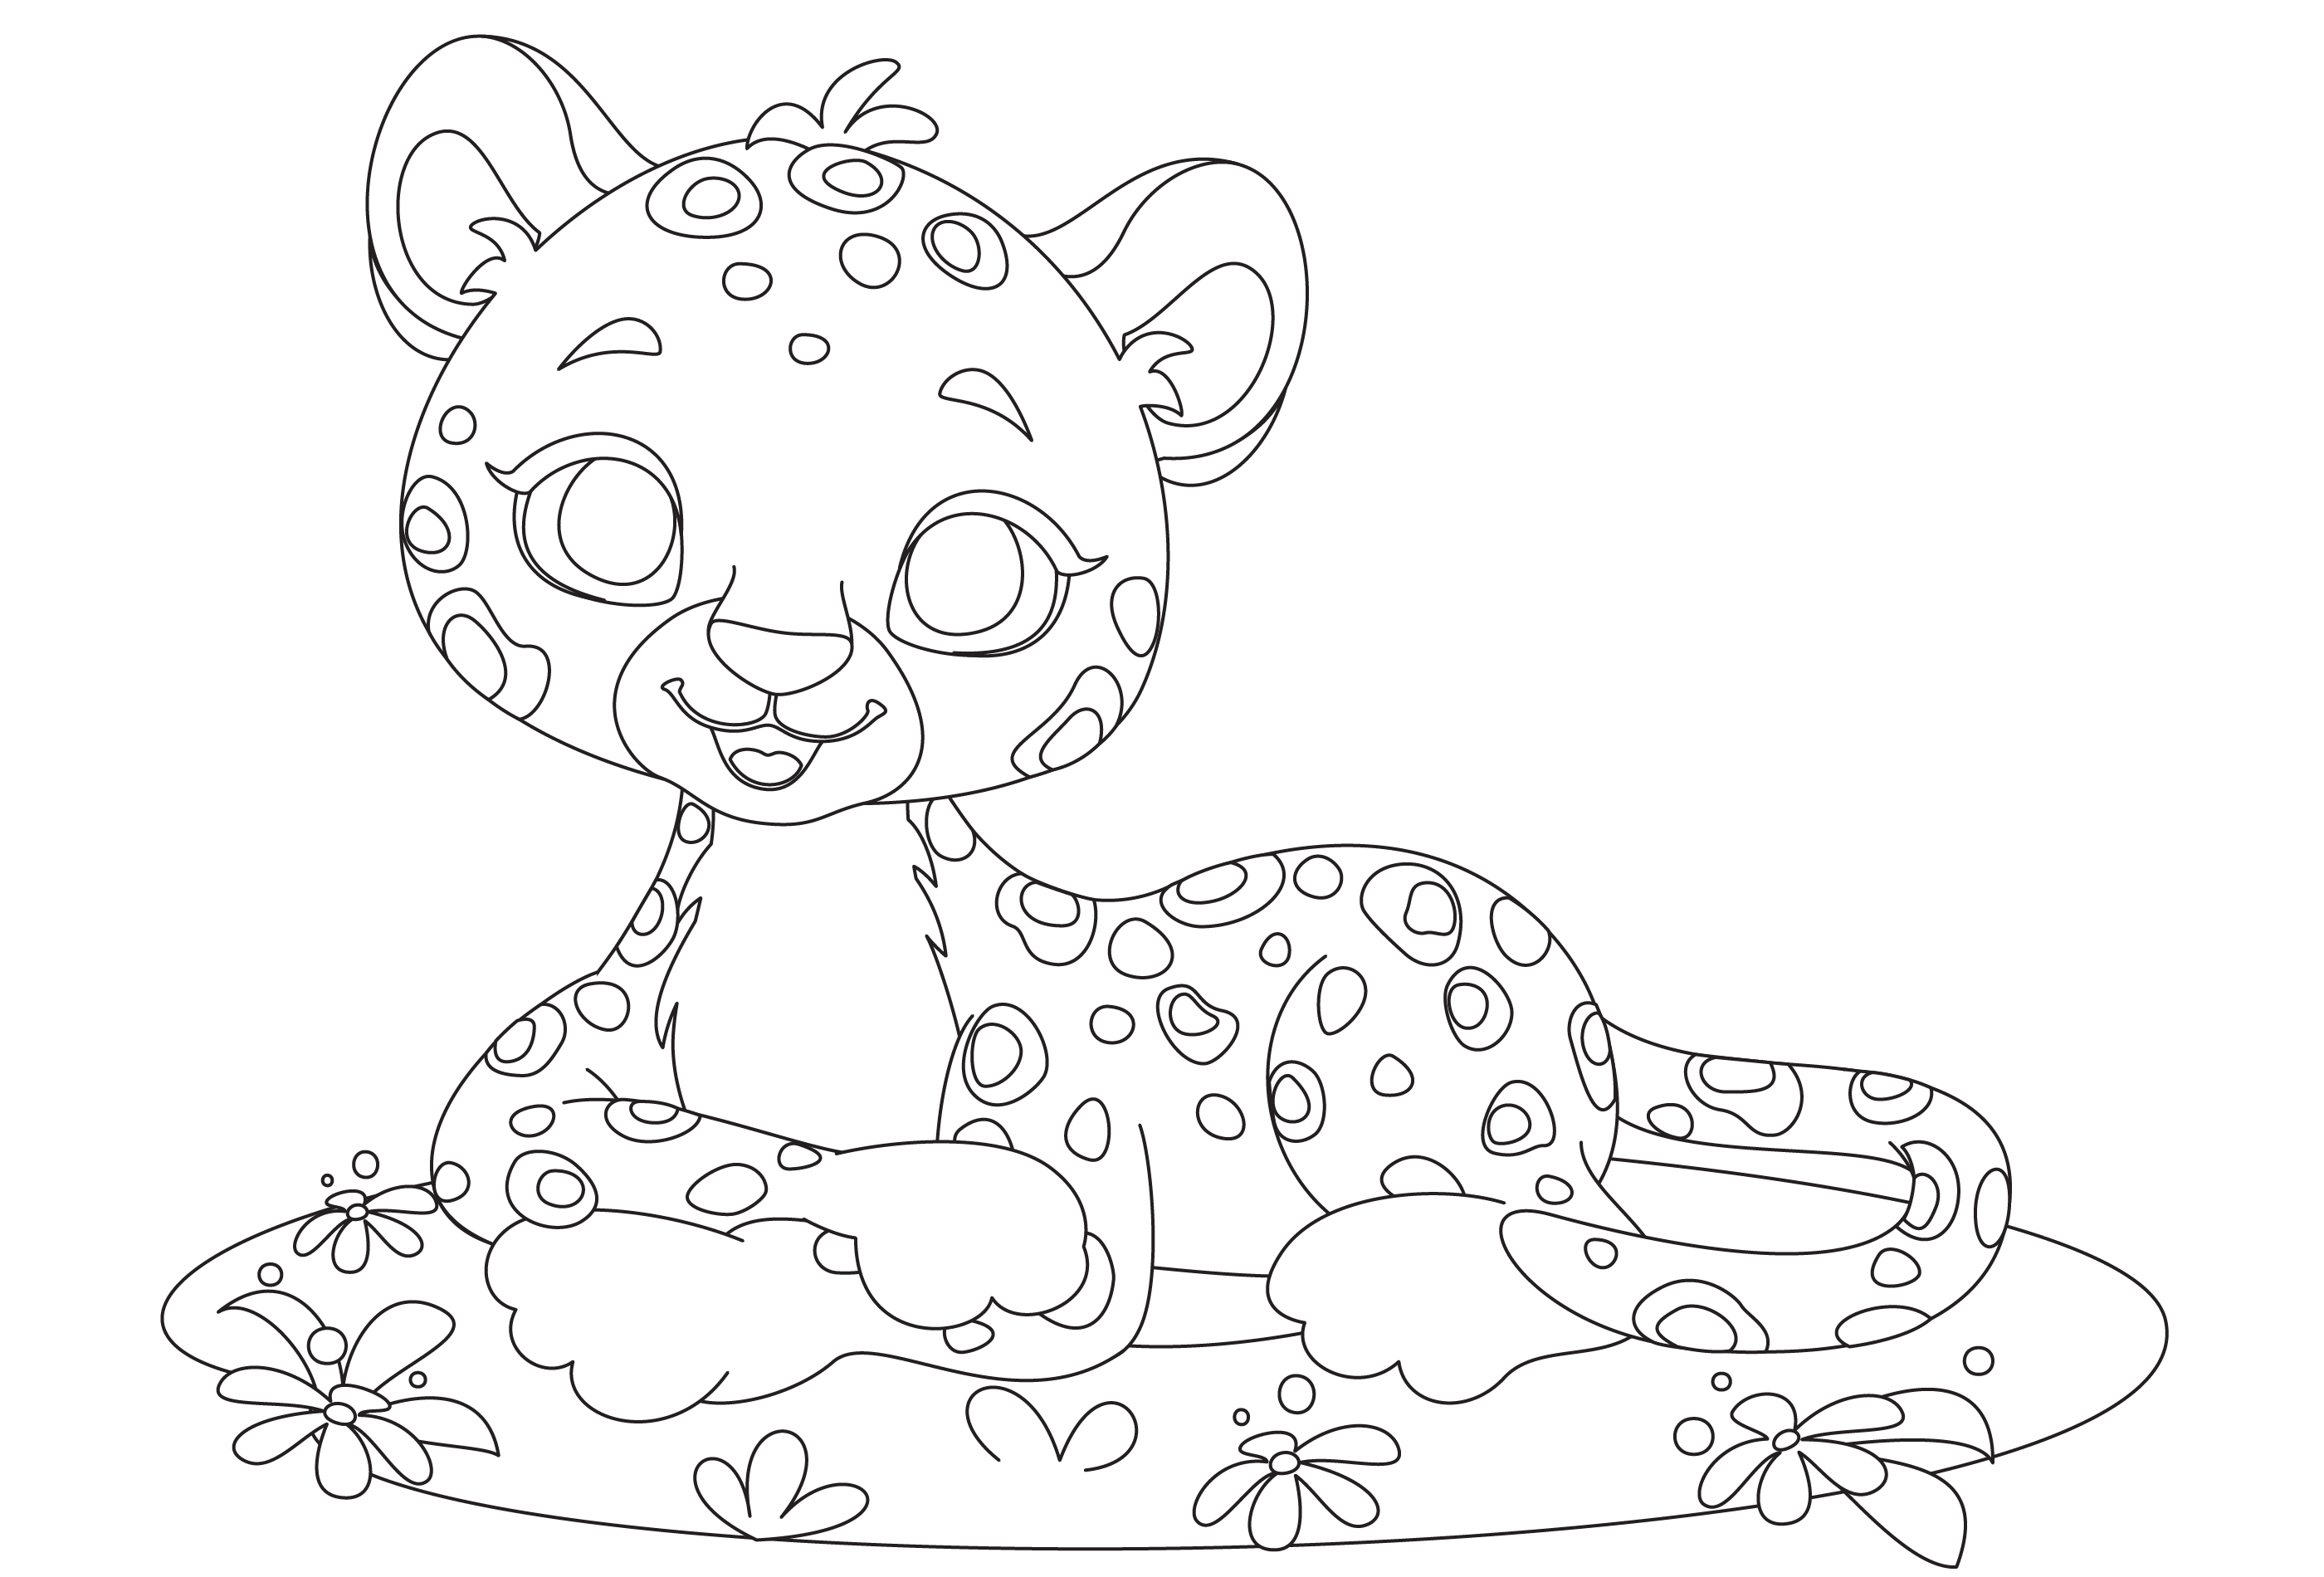 Baby leopard cute cartoon outline drawing - Download Free ...